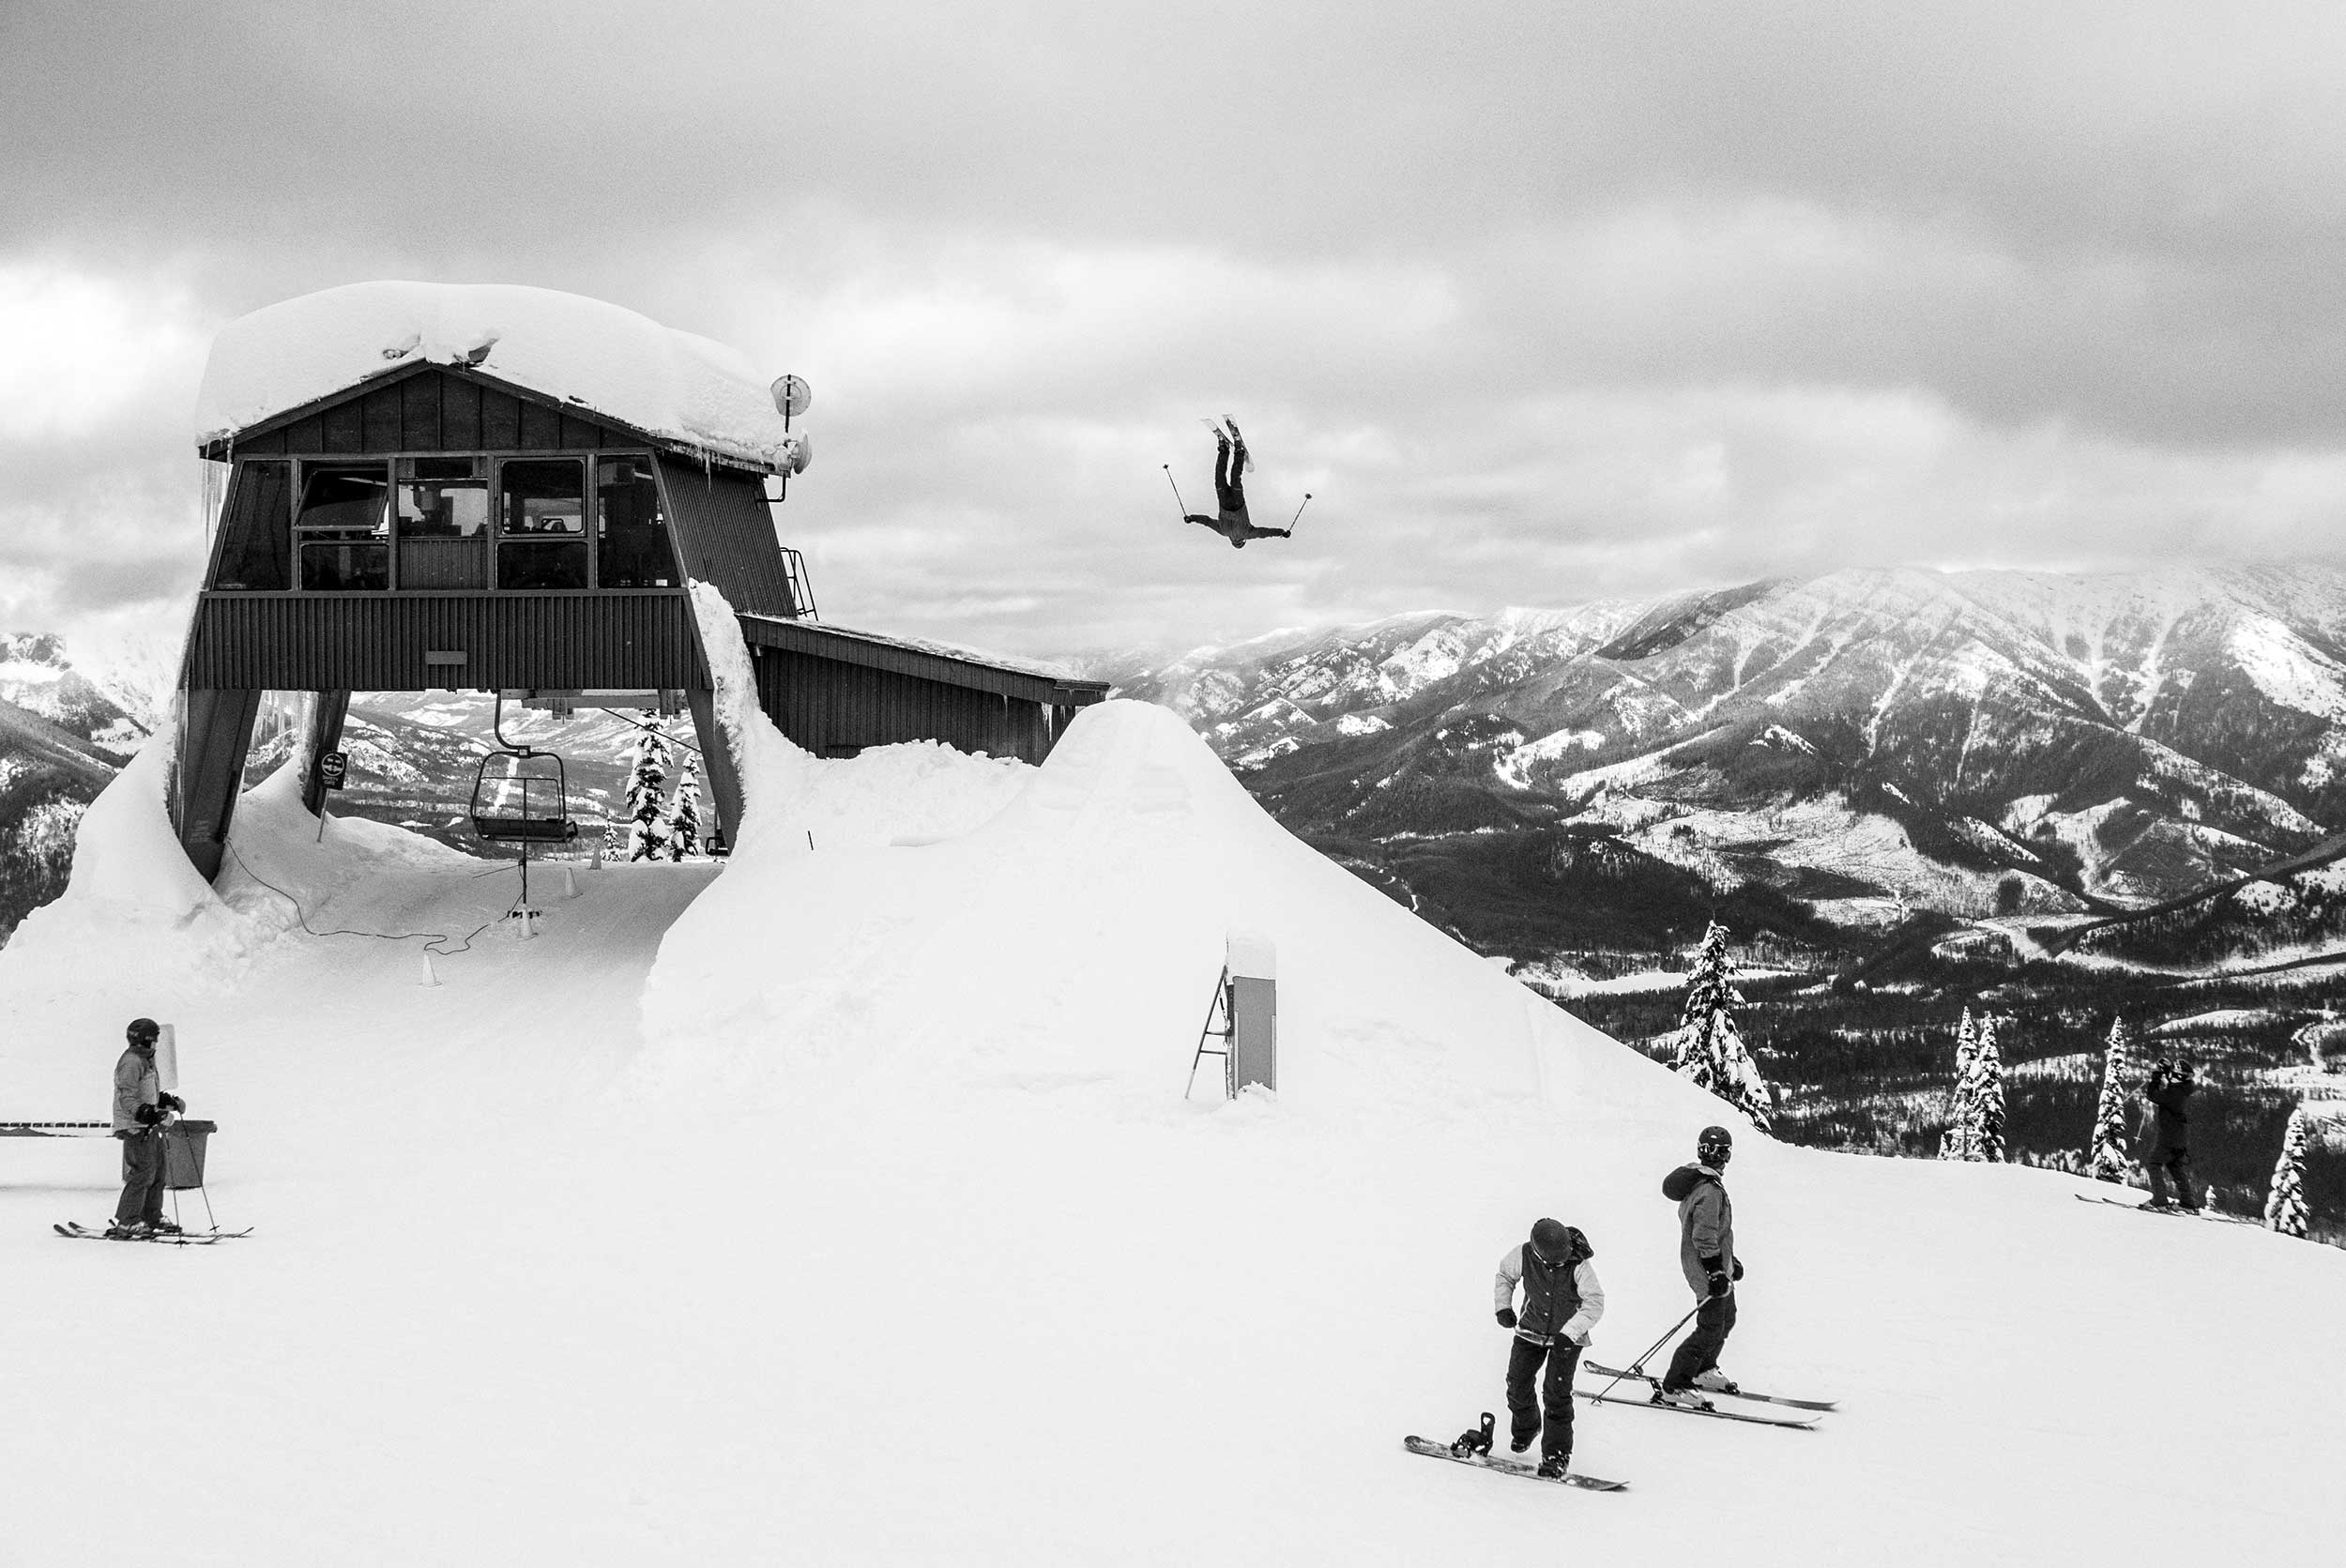 One of Heule's biggest influencers was Anthony Boronowski, who asked Heule to join the team for his company, Joystick Poles. PHOTO: Sämi Ortlieb